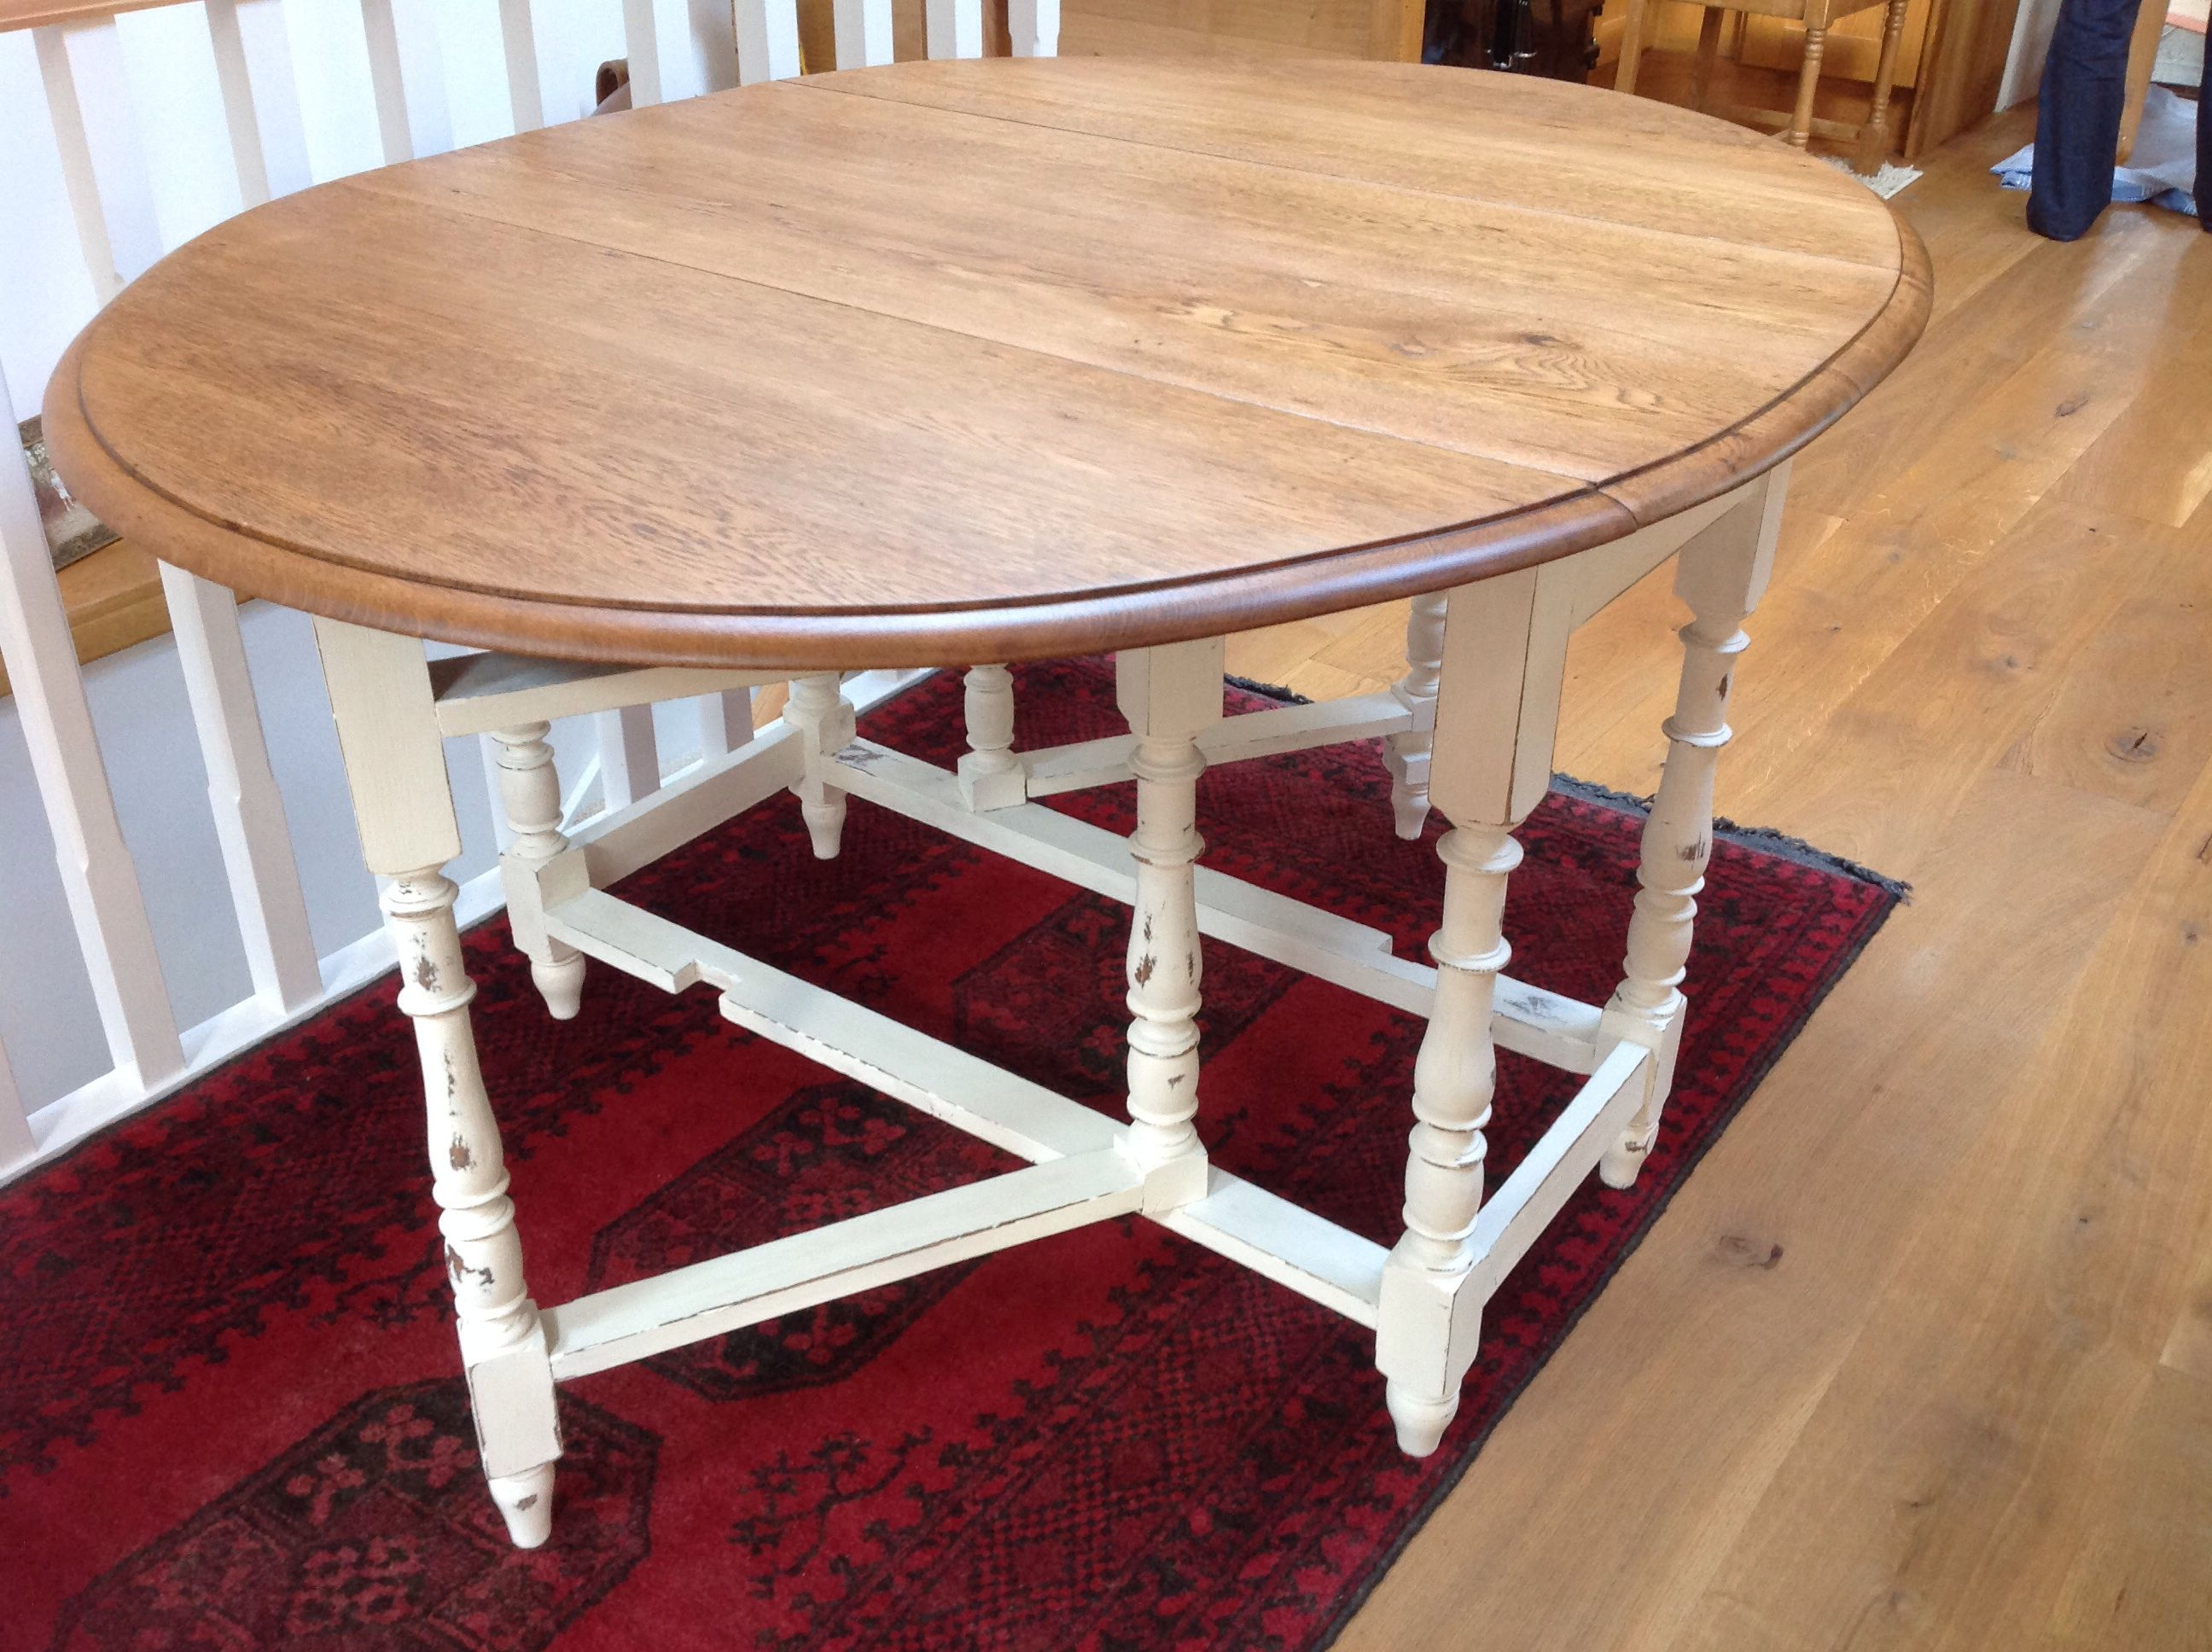 Oak Gate Leg Table, Seats Six, Painted And Waxed Legs, Varnished Top.